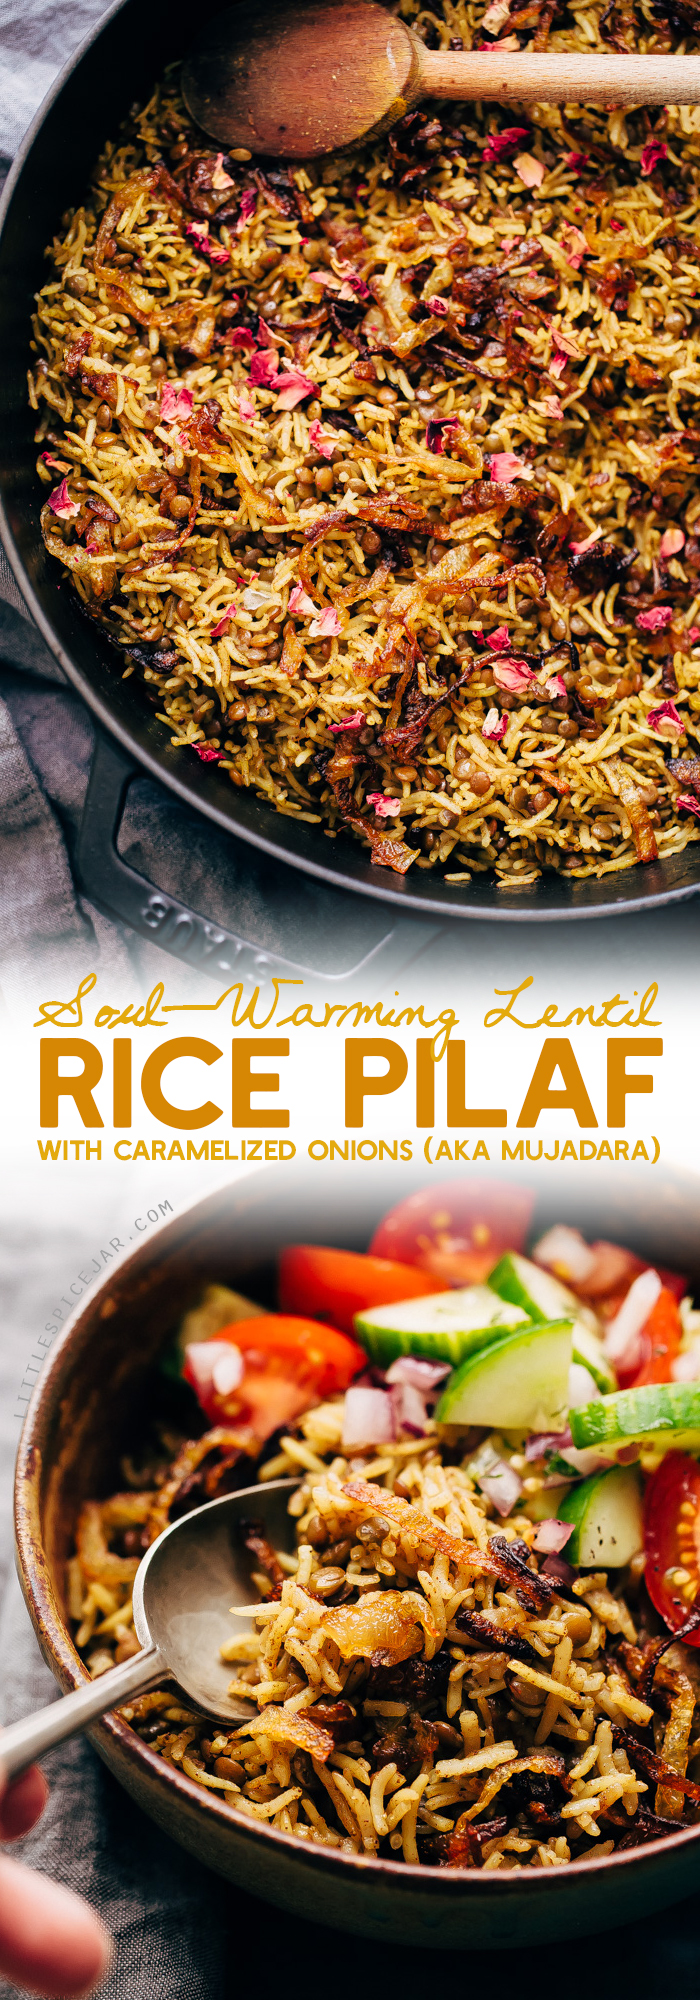 Lentil Rice Pilaf with Caramelized Onions (Mujadara) - this simple lentils and rice recipe is great as a main course or as a side for holidays! #mujadara #lentilricepilaf #lebanesericepilaf #ricepilaf #pilaf | Littlespicejar.com